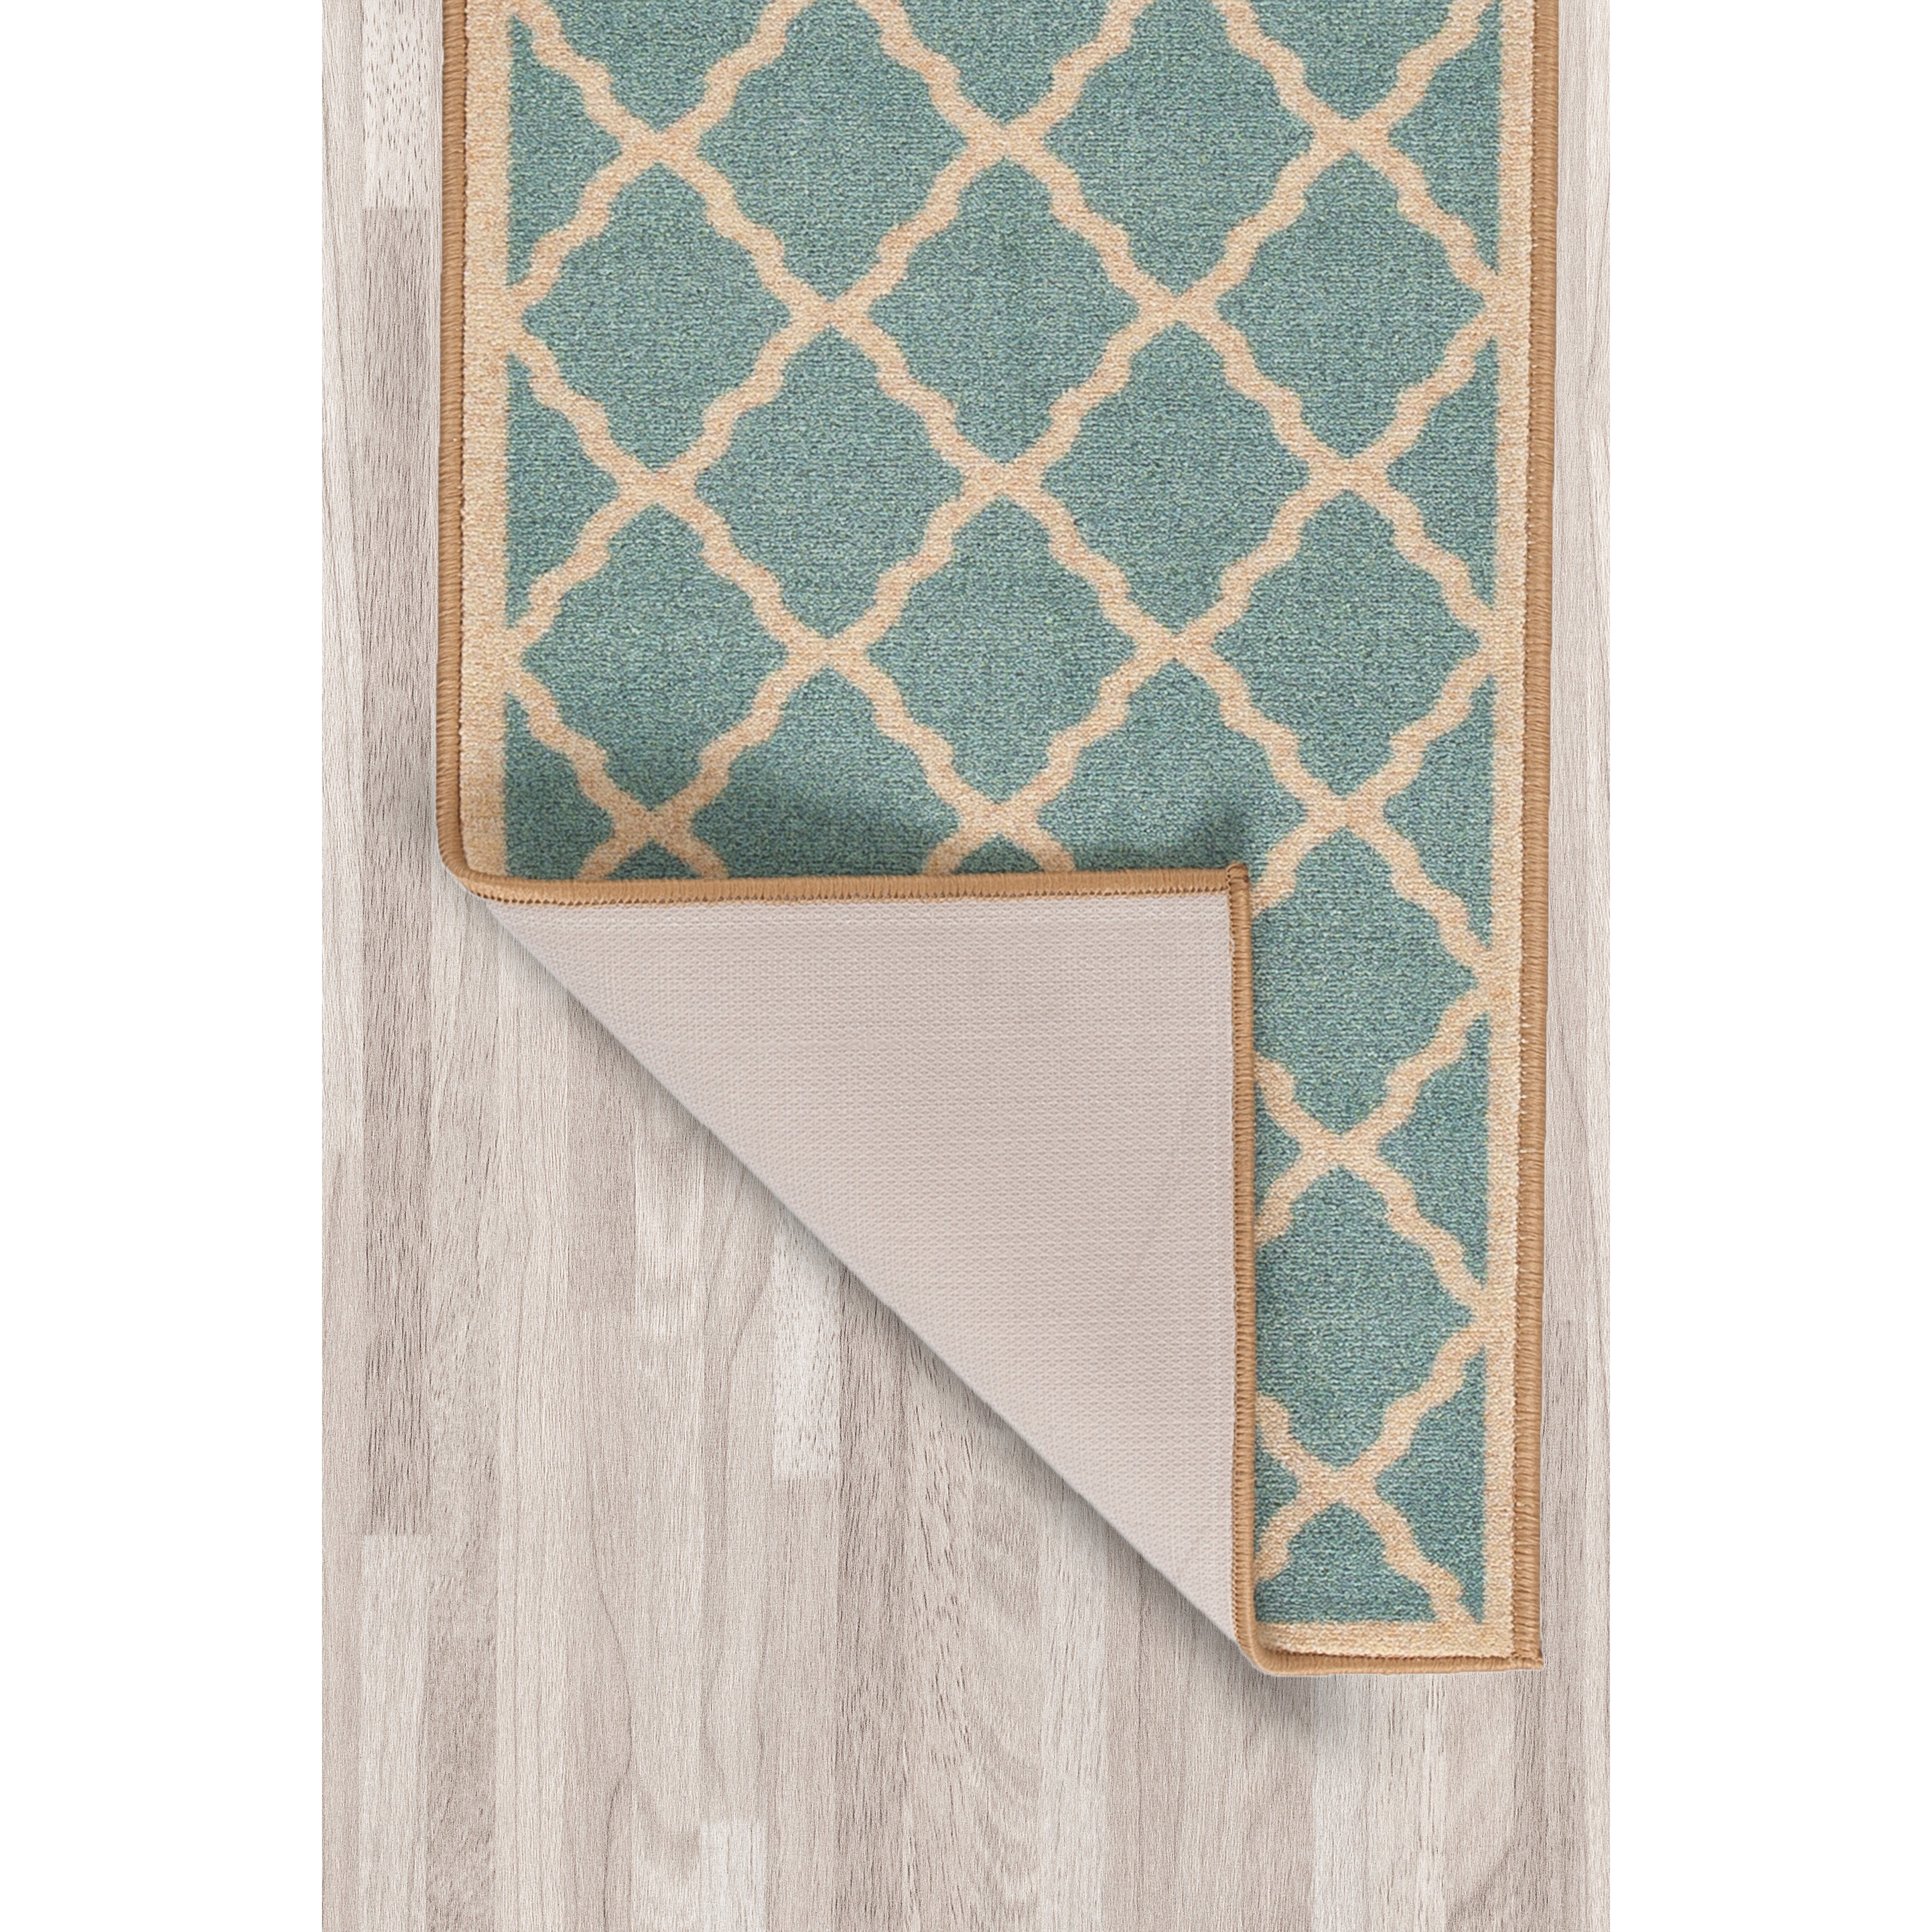 Ottomanson Prestige Teal Blue Area Rug & Reviews